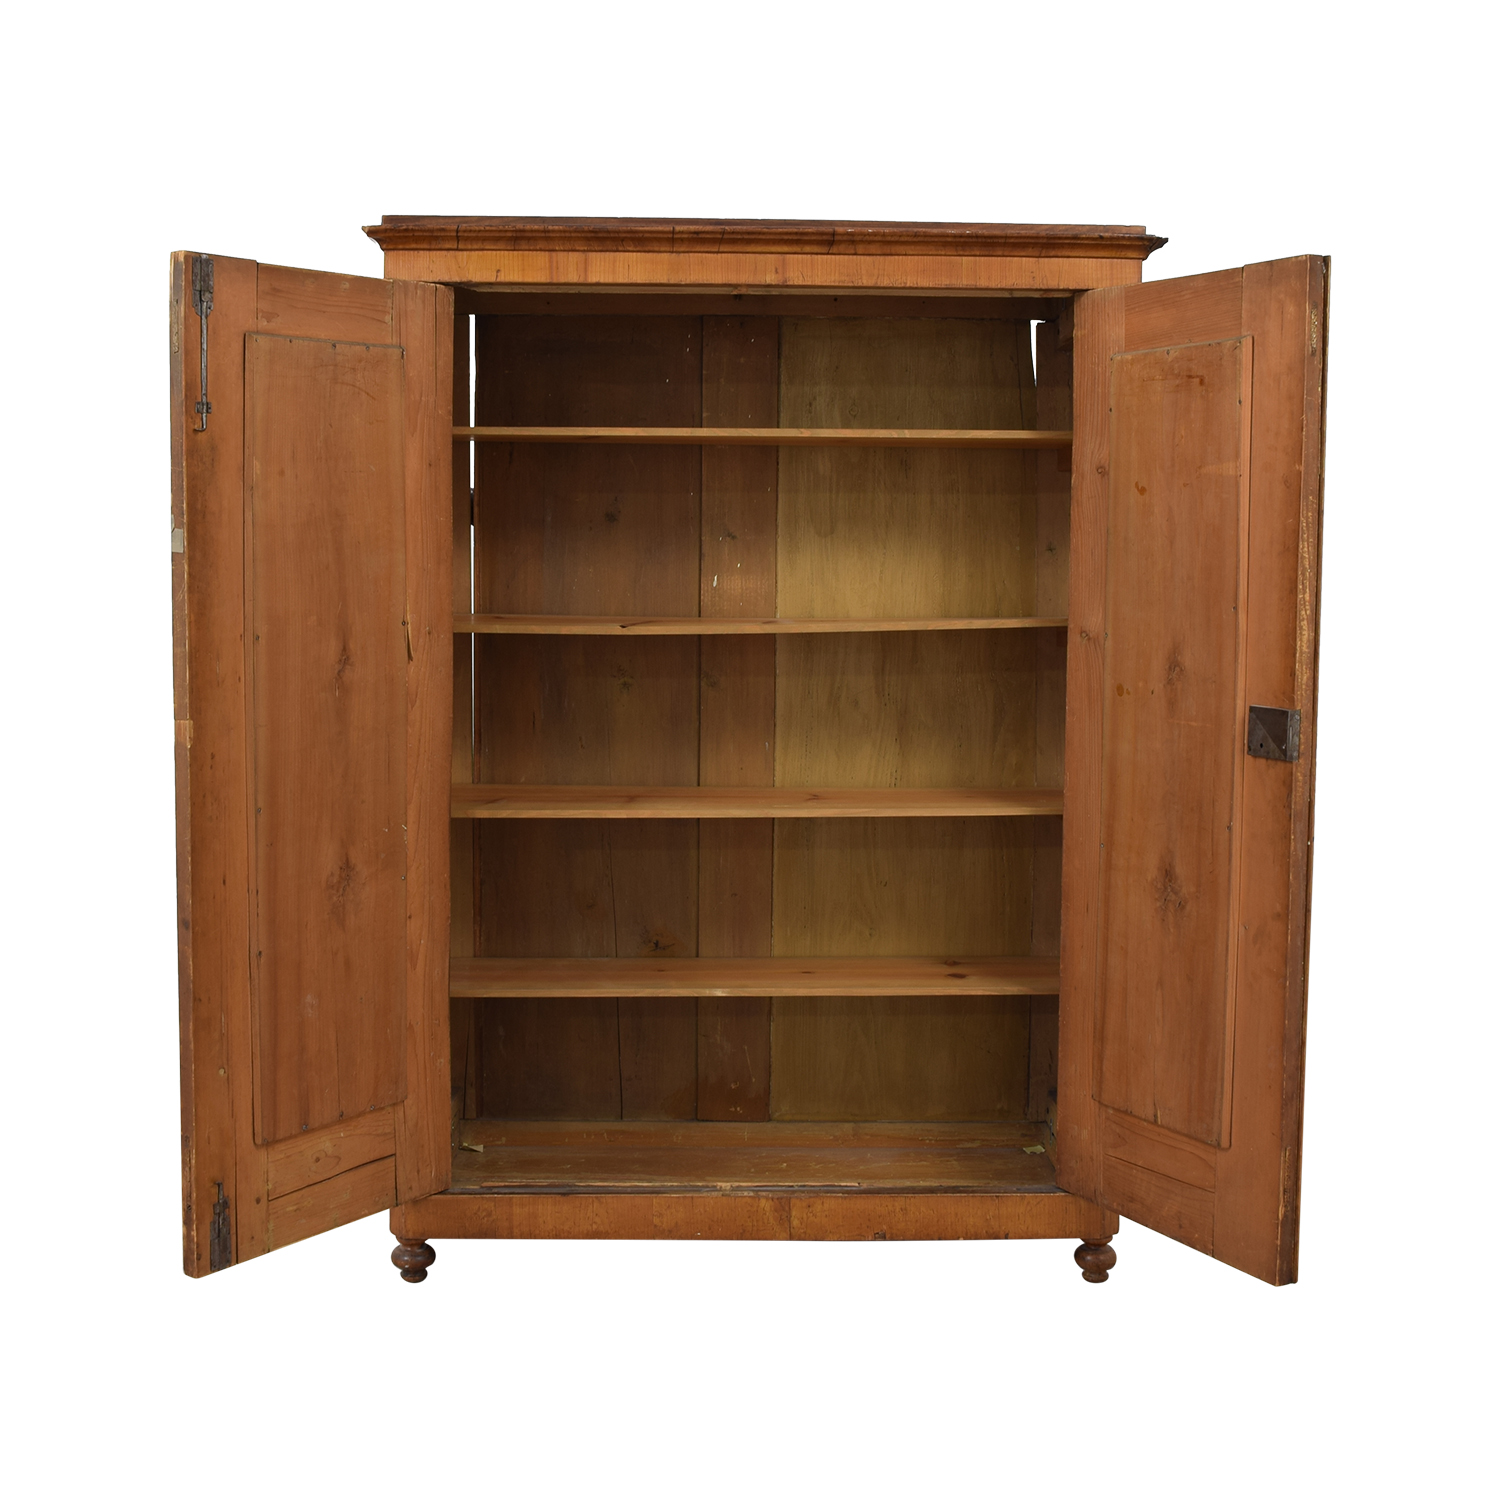 85% Off - Wood Wardrobe Armoire With Shelves / Storage